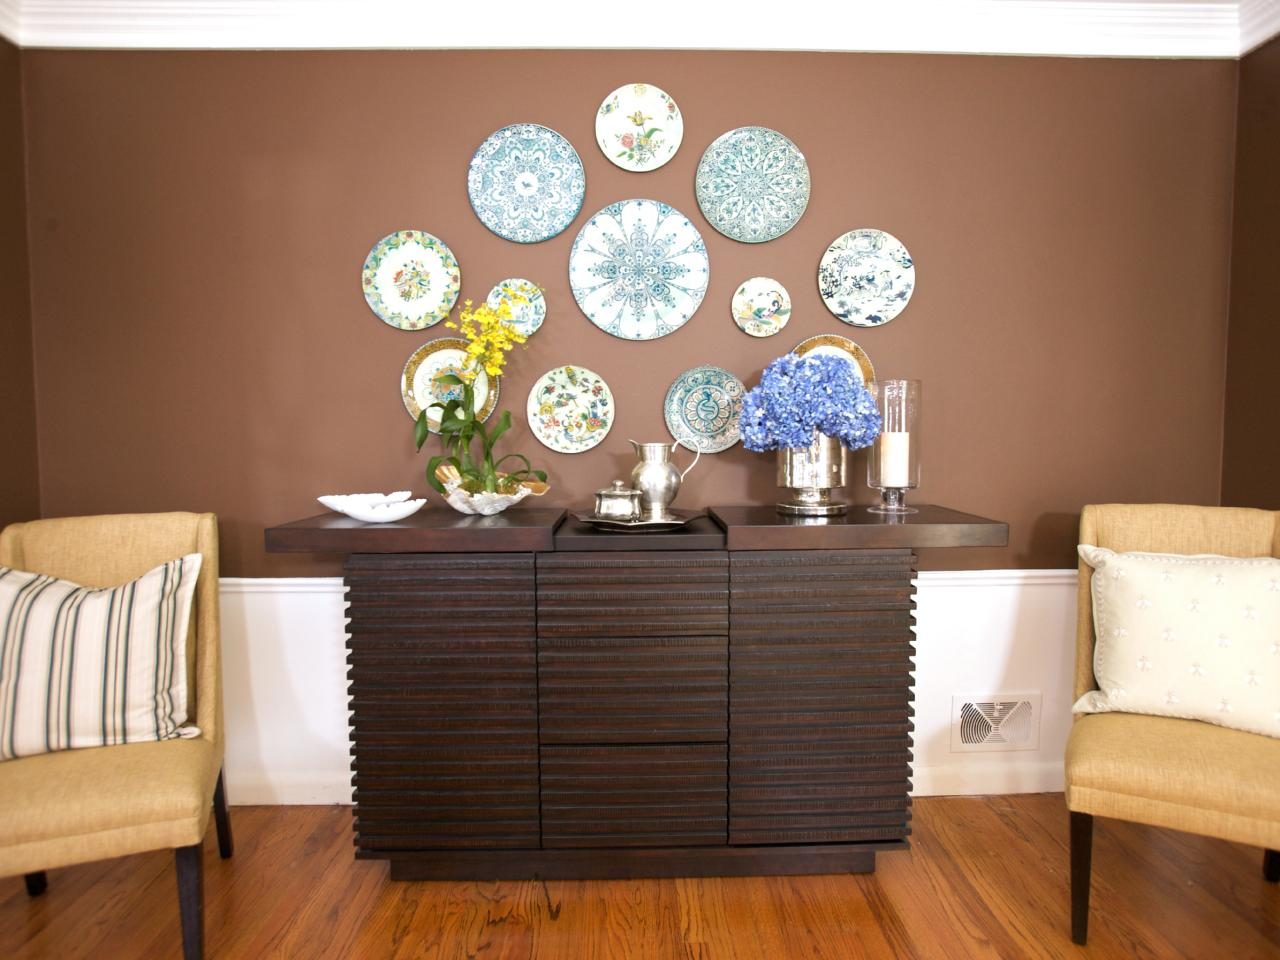 Plates Wall Decor Plate Wall Decor Is Cheap Easy And Can Be Incorporated In Any